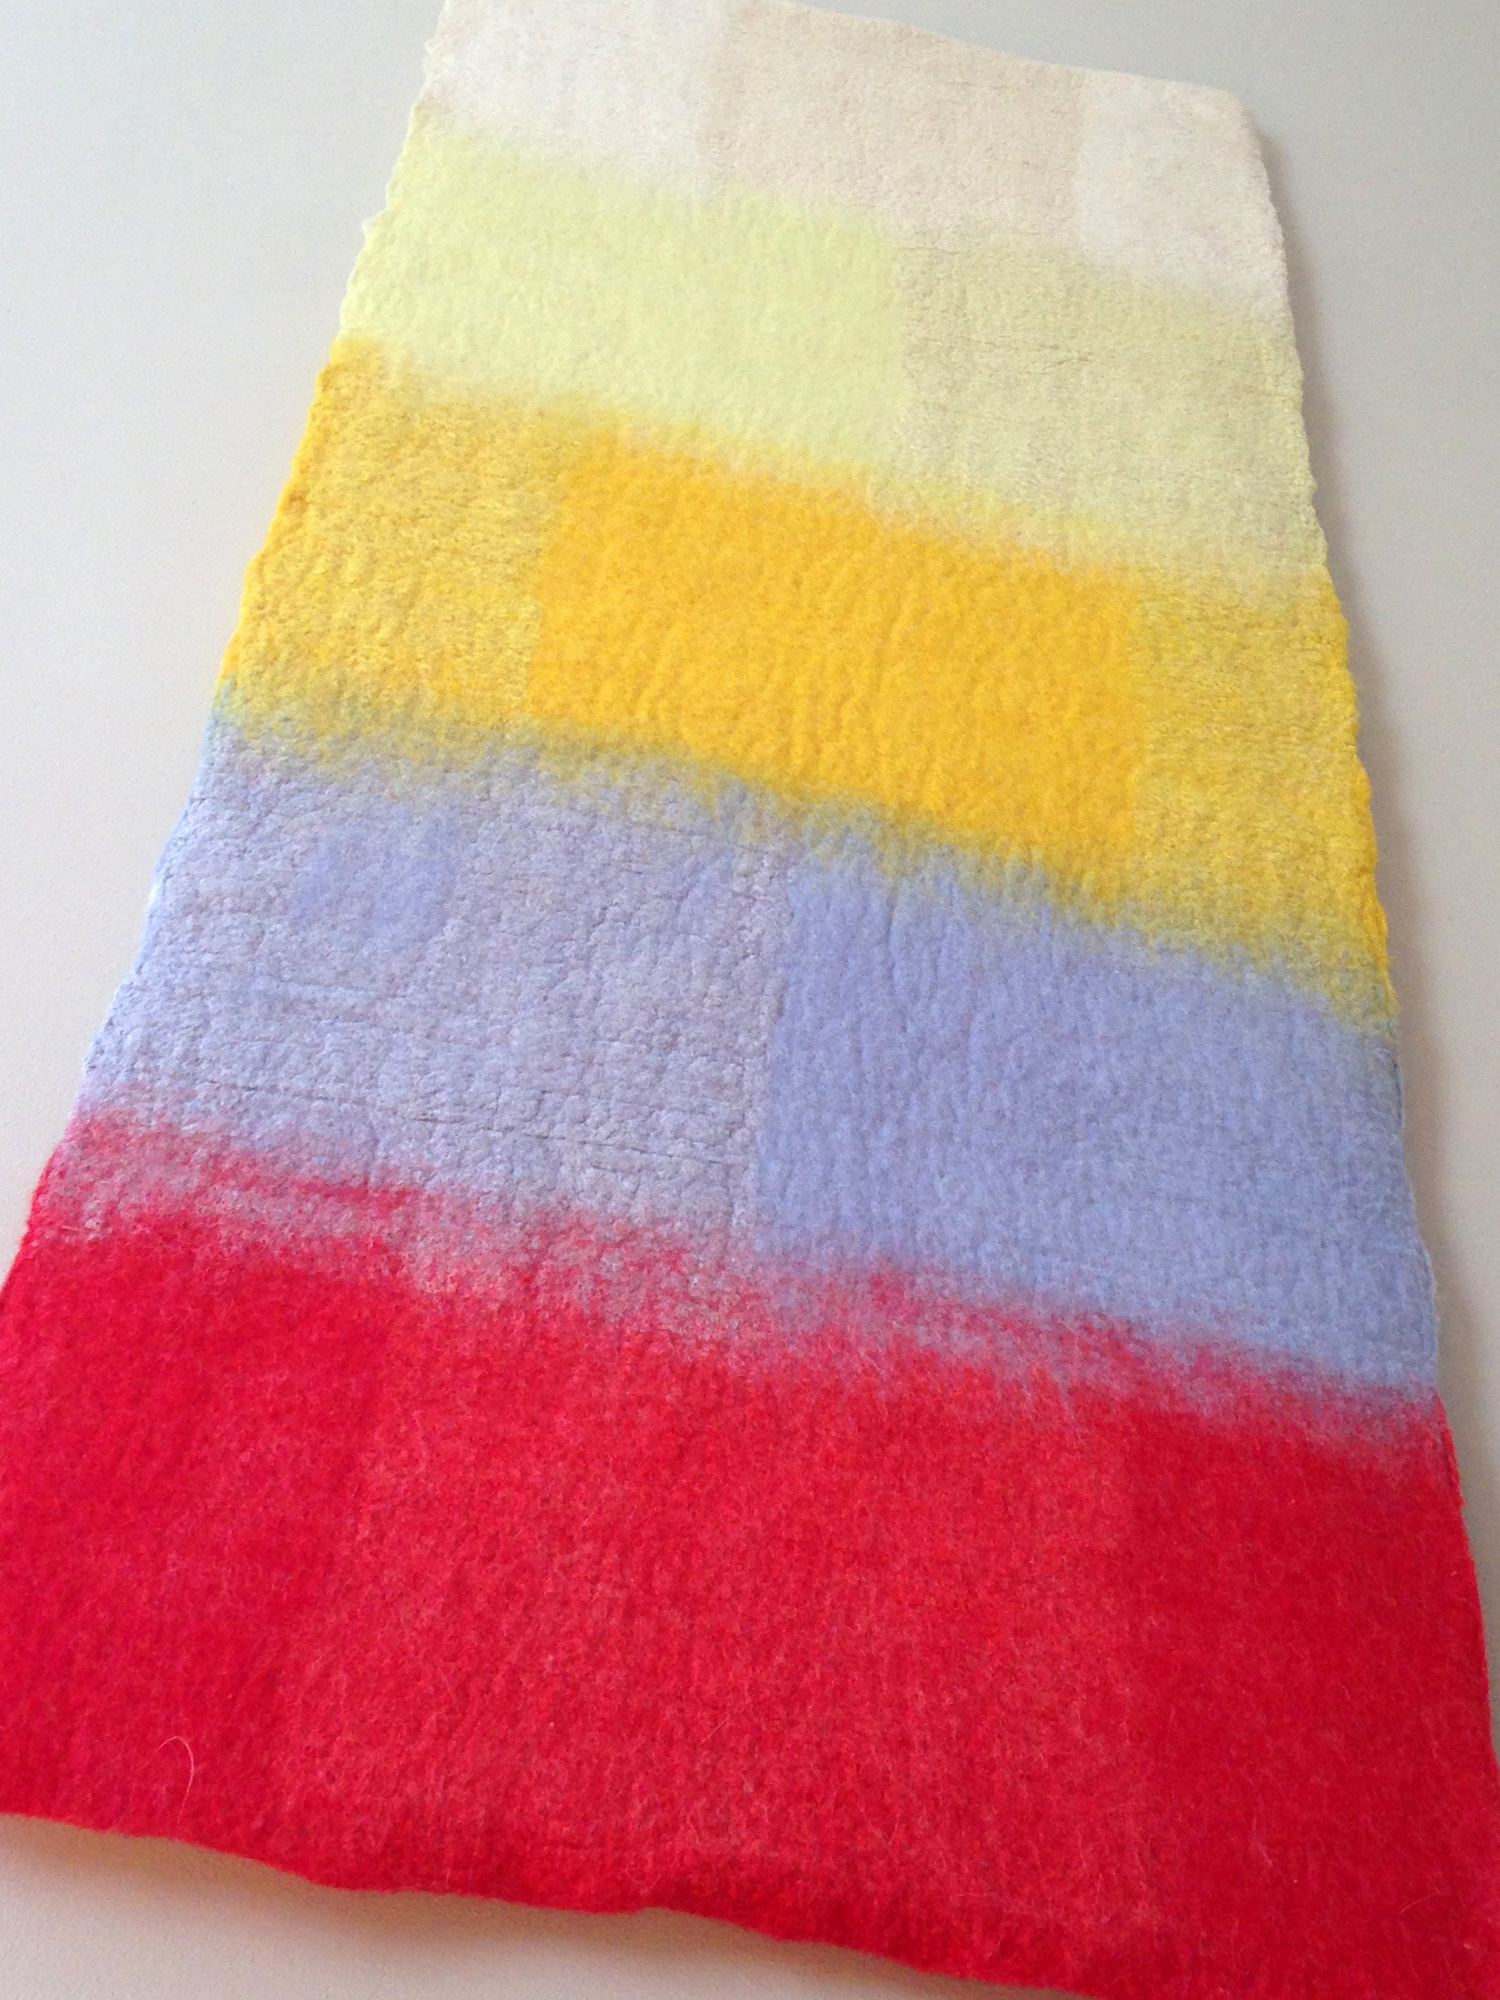 """""""Color Migration: White, Yellow, Periwinkle, Red""""  SOLD"""